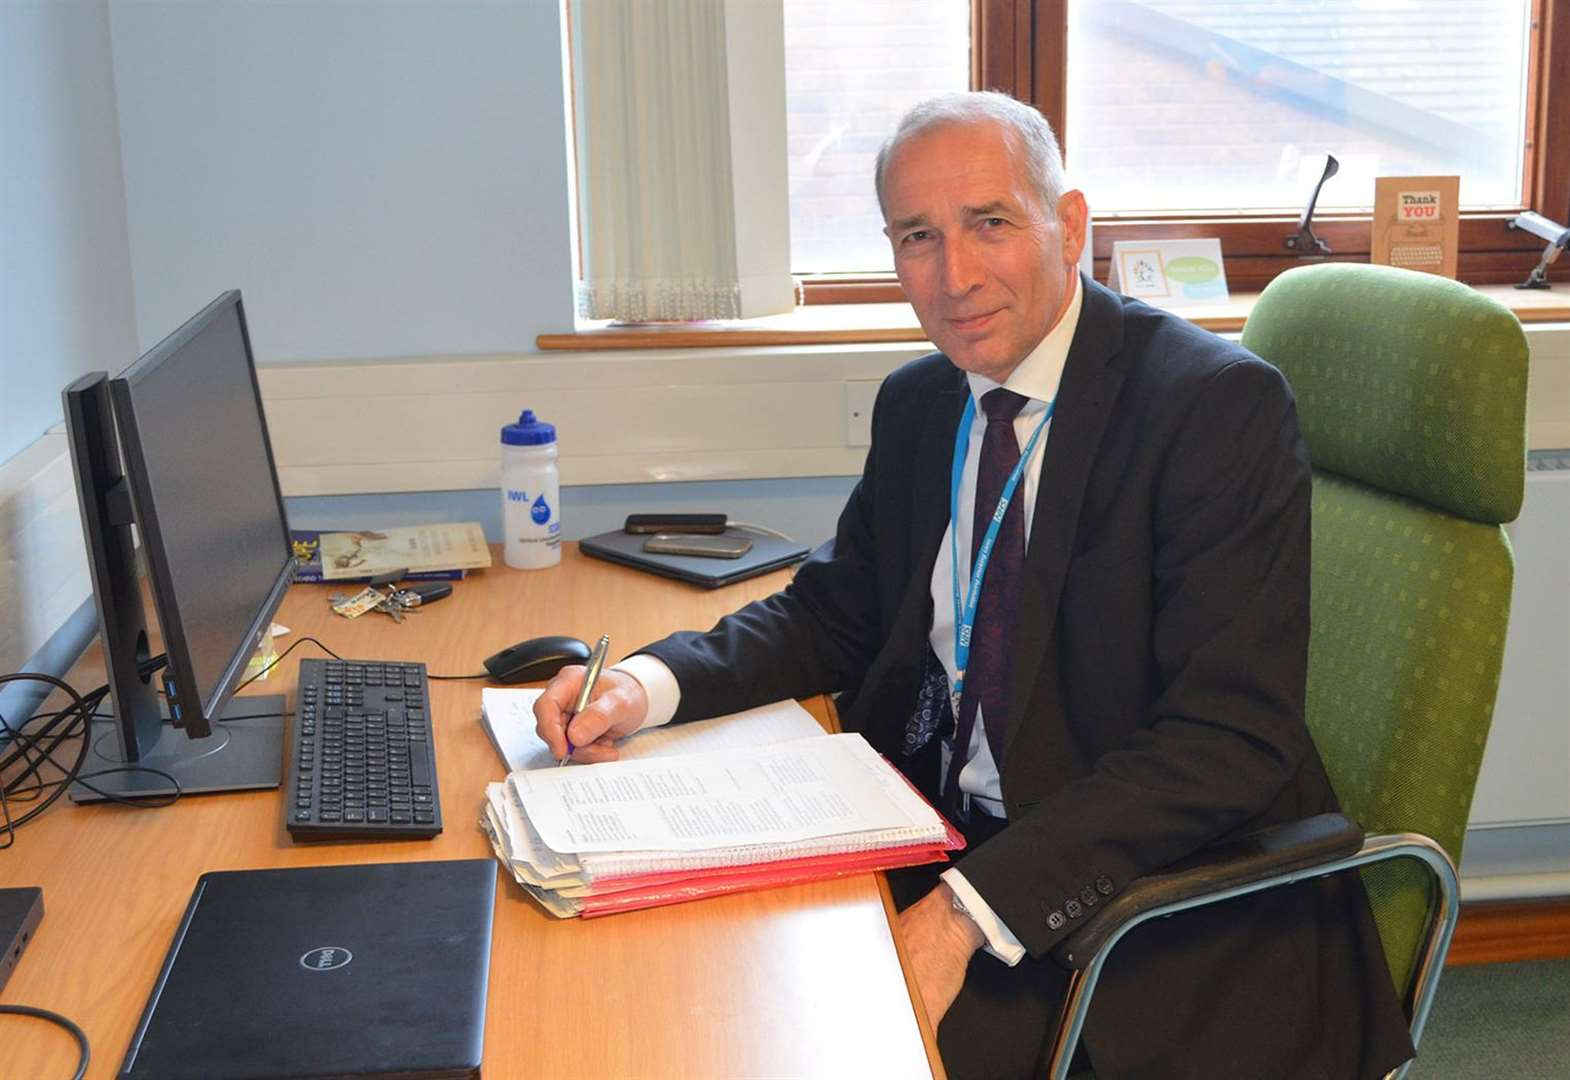 Trust which runs Grantham Hospital in 'better position' now says outgoing chief executive